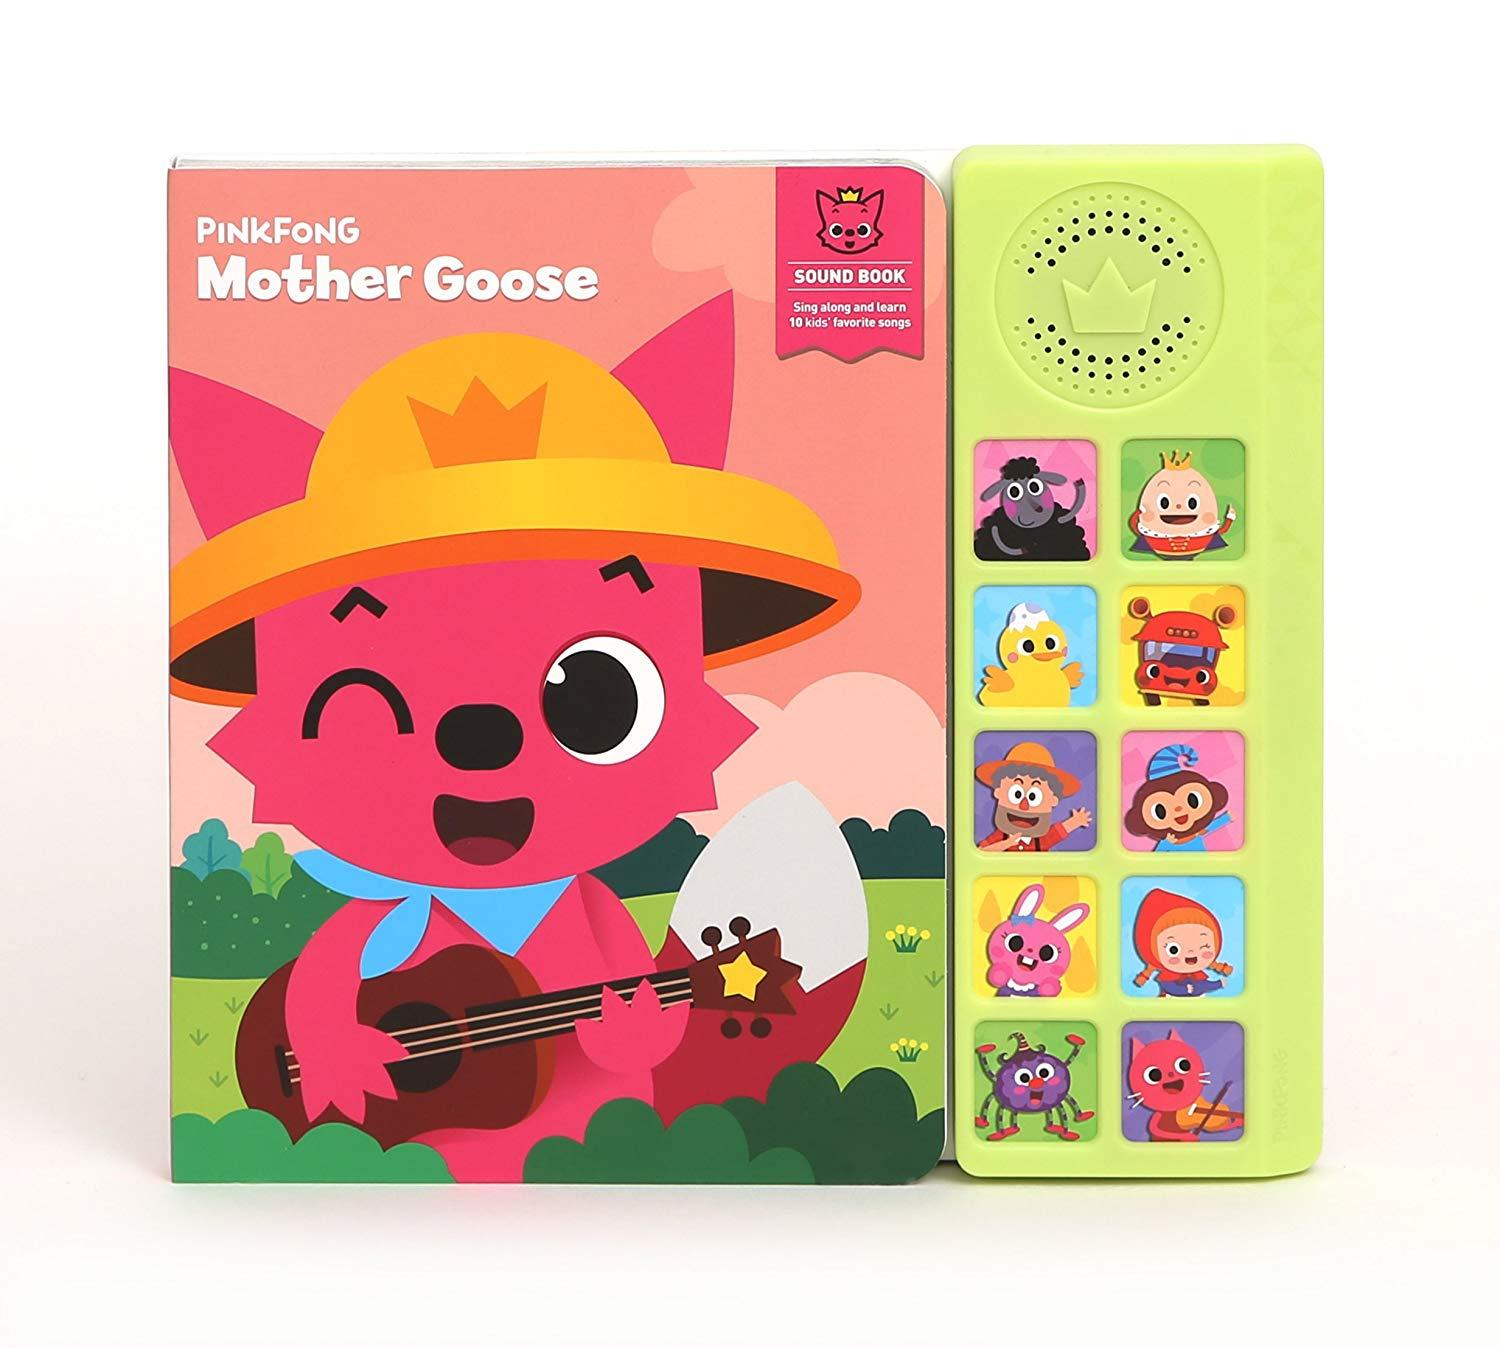 Pinkfong - Pinkfong Soundbook - Mother Goose By Pinkfong.